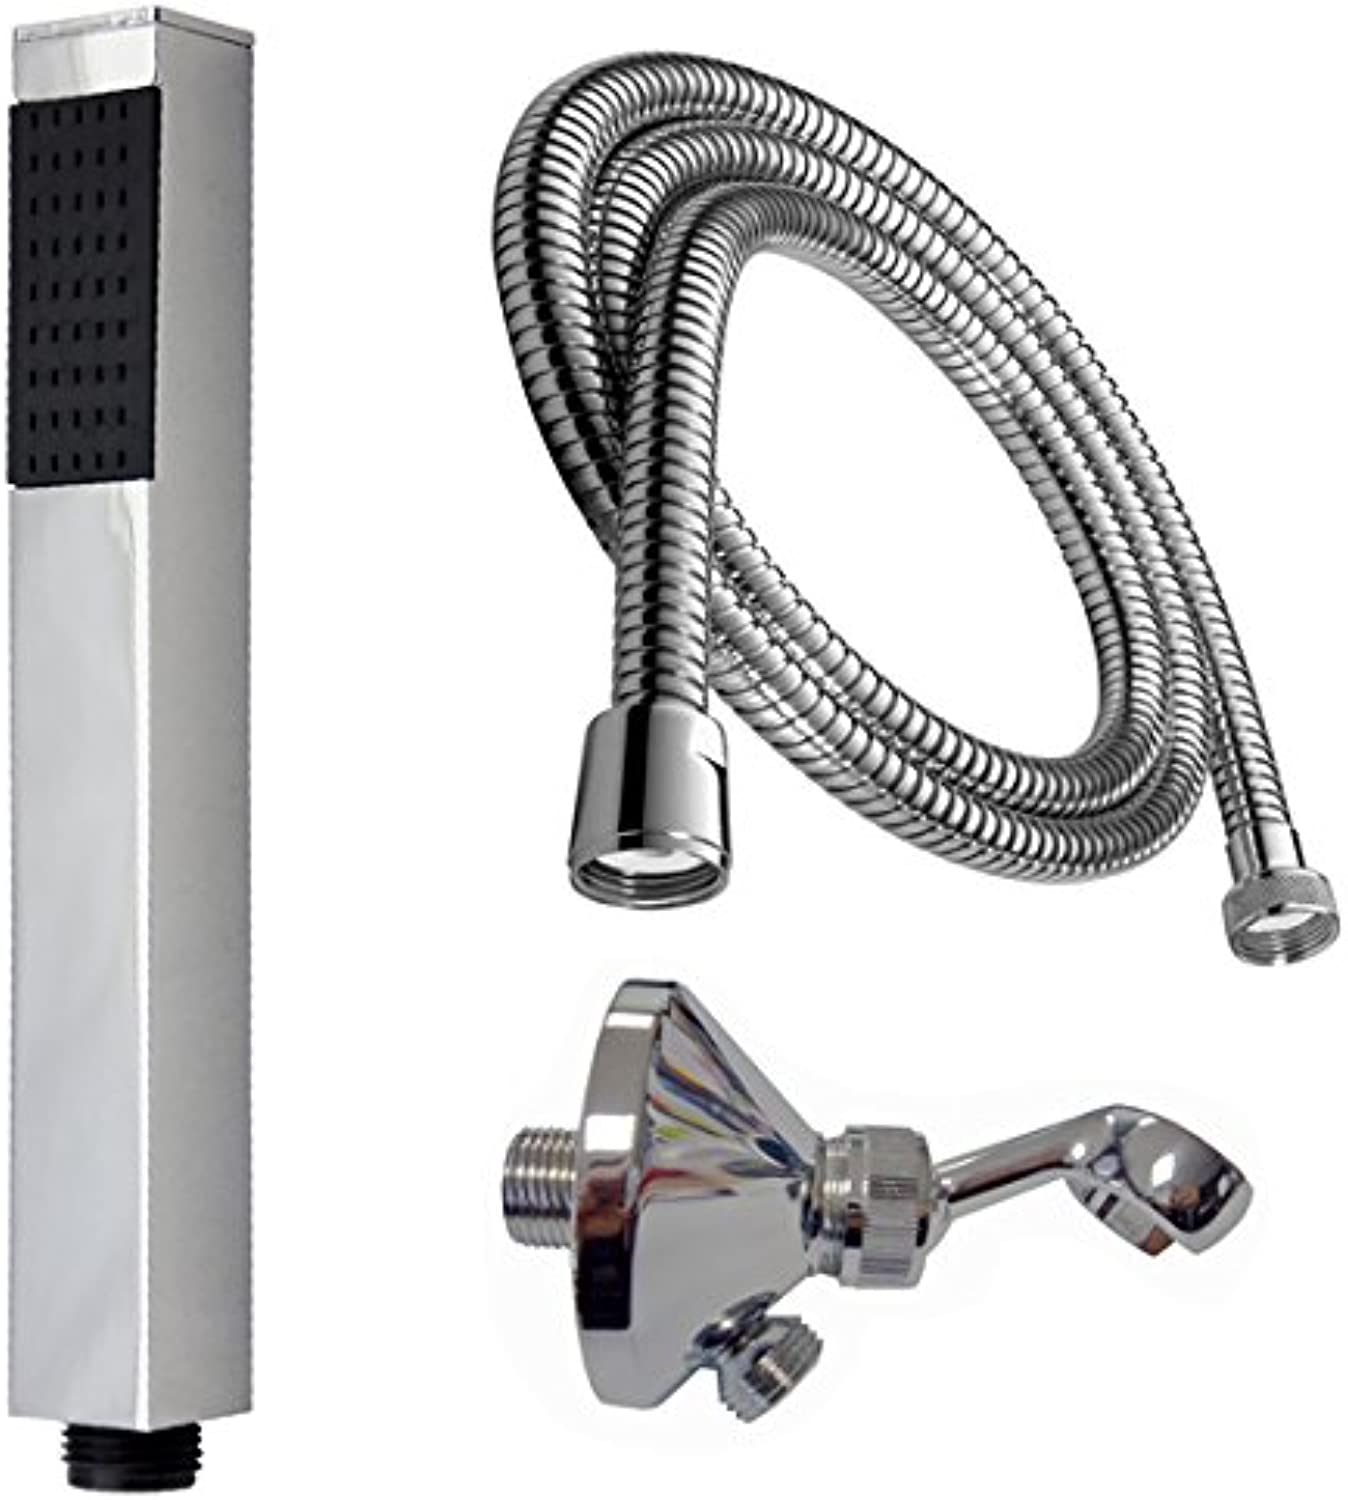 Square Hand Shower Brass with hose 150?cm Shower Head Holder Wall Connection